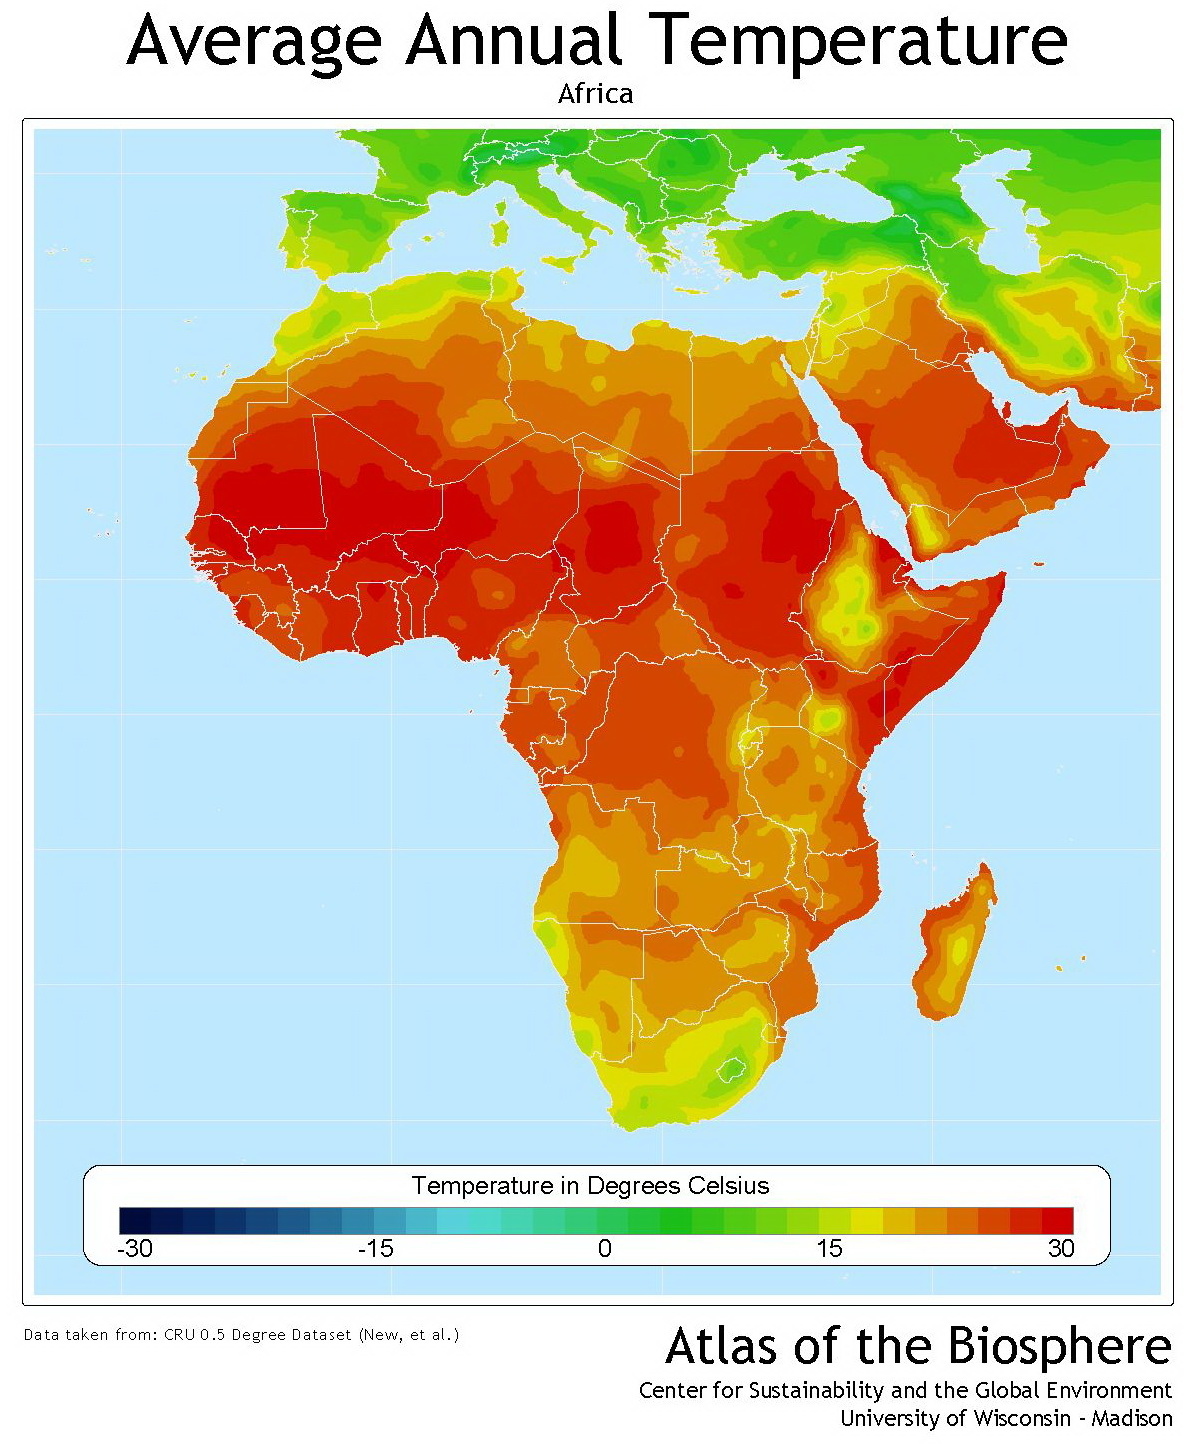 Africa average annual temperature